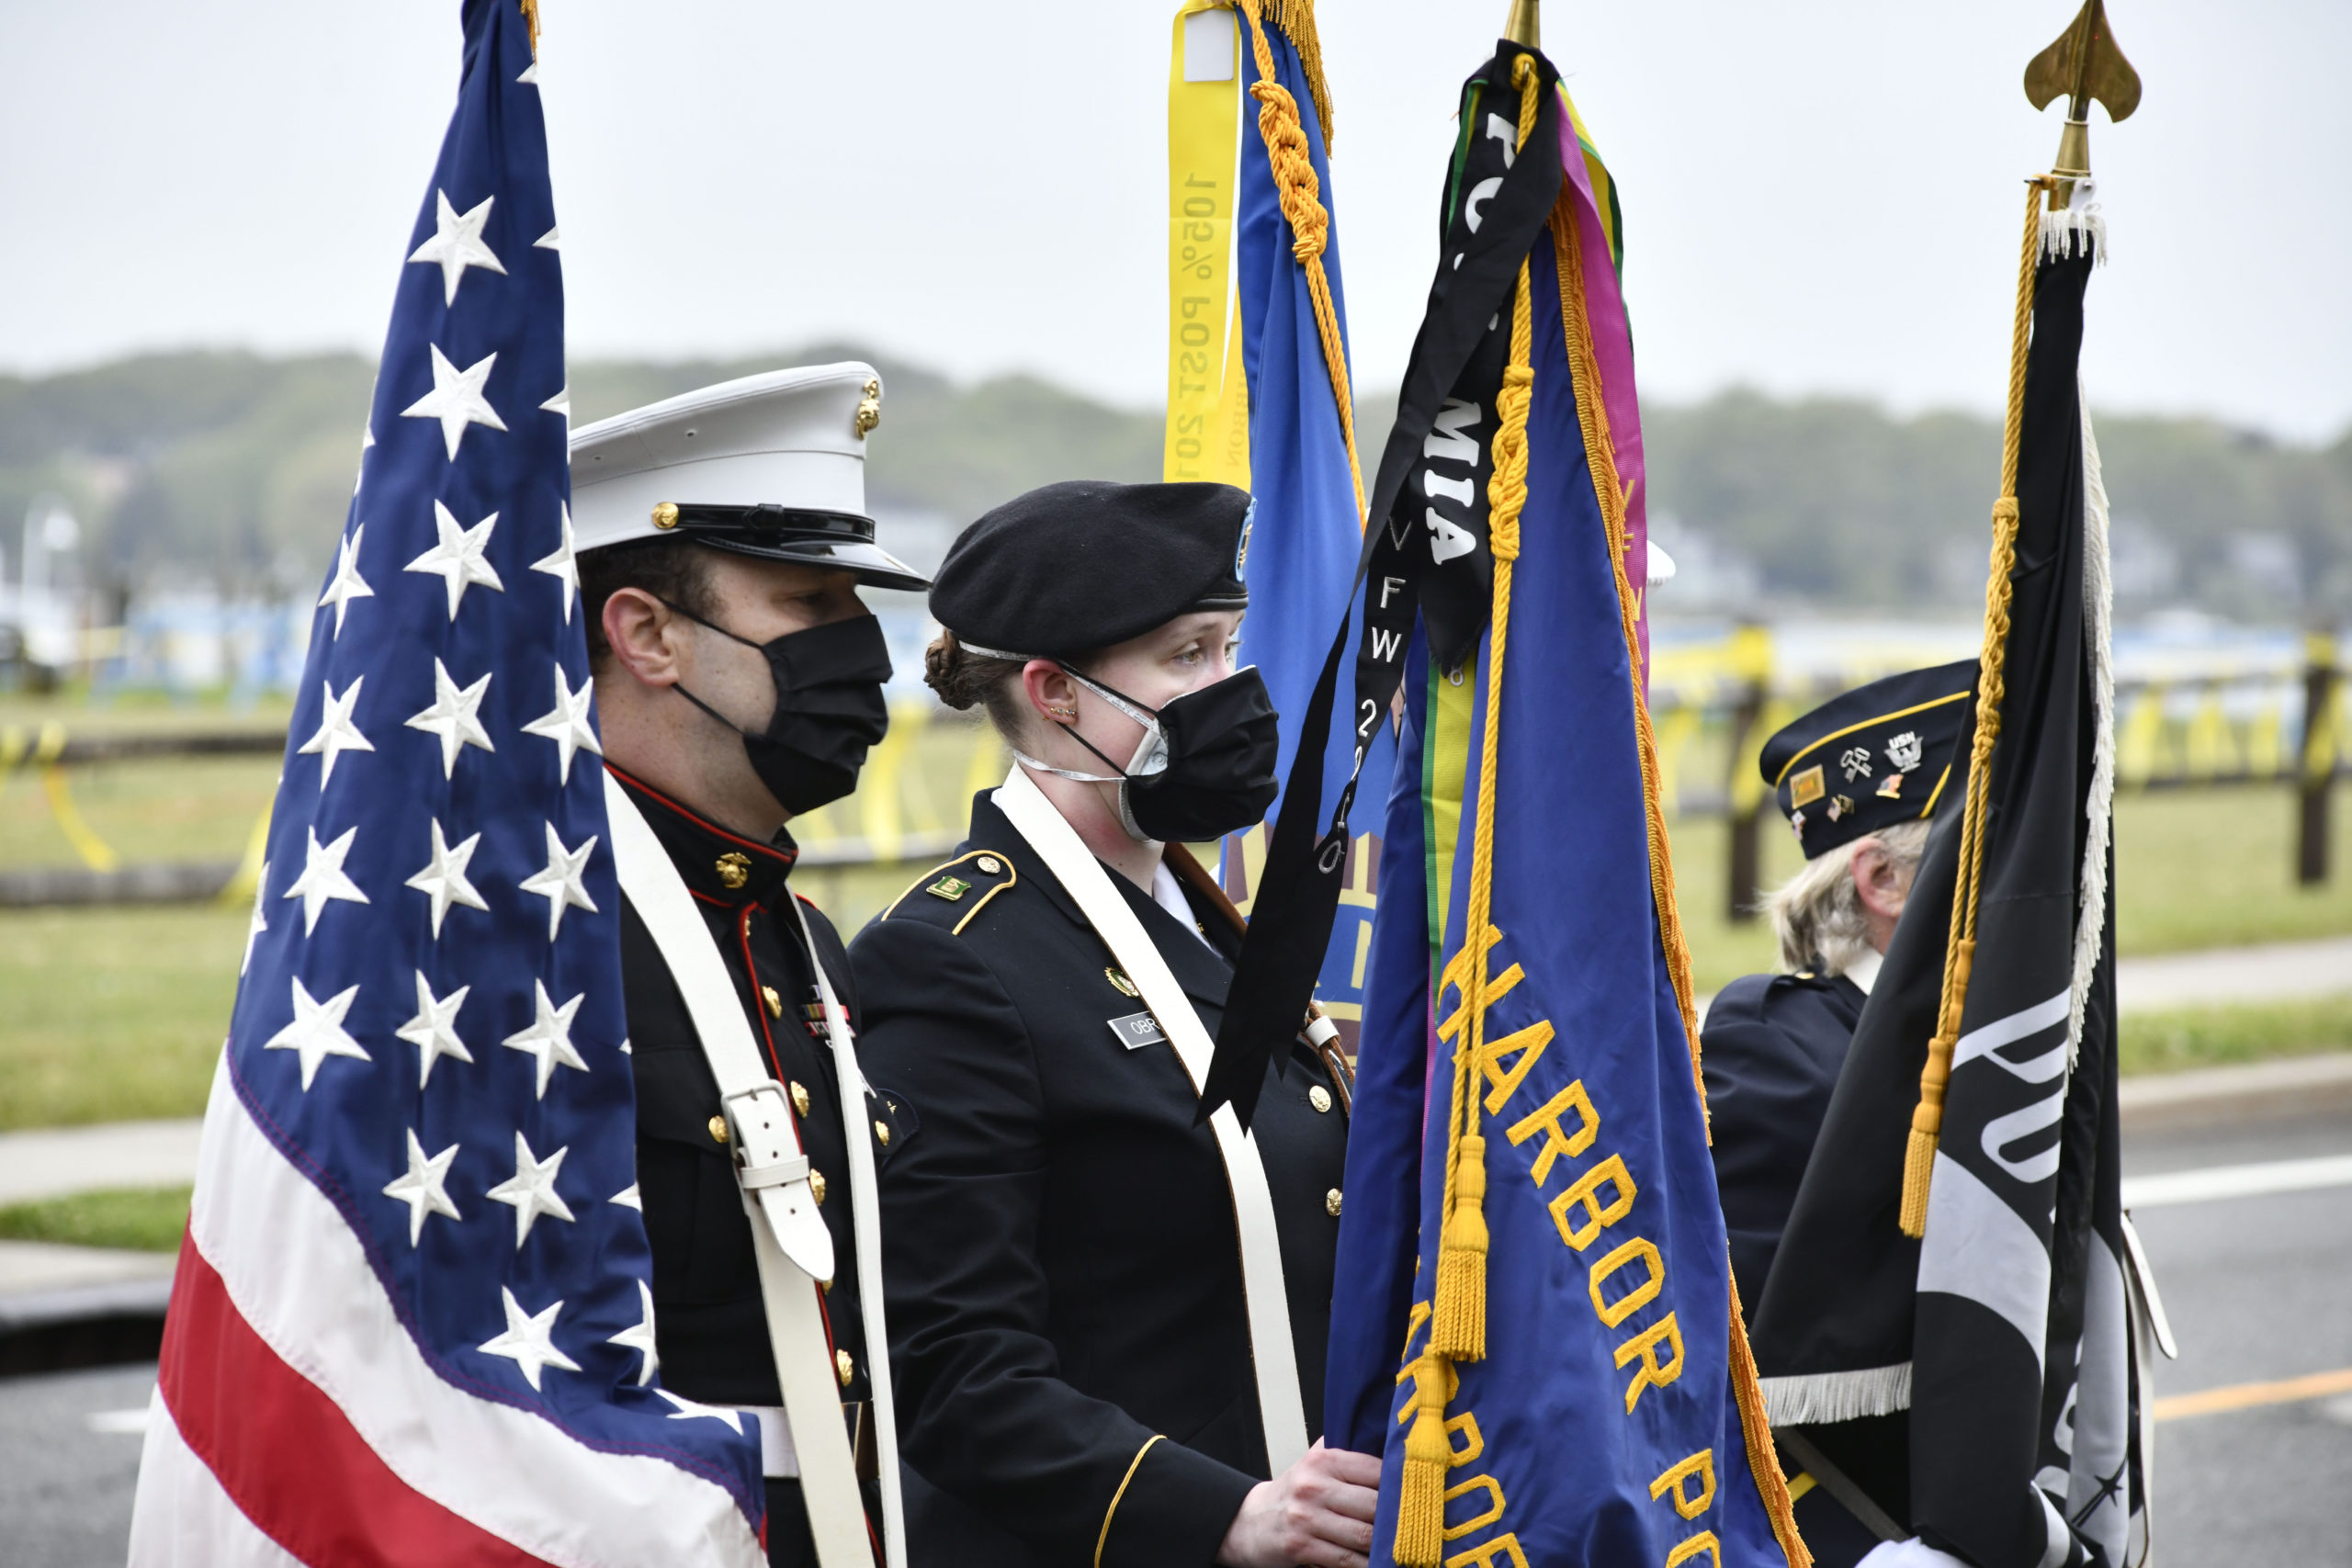 Memorial Day observances in Sag Harbor on Monday.